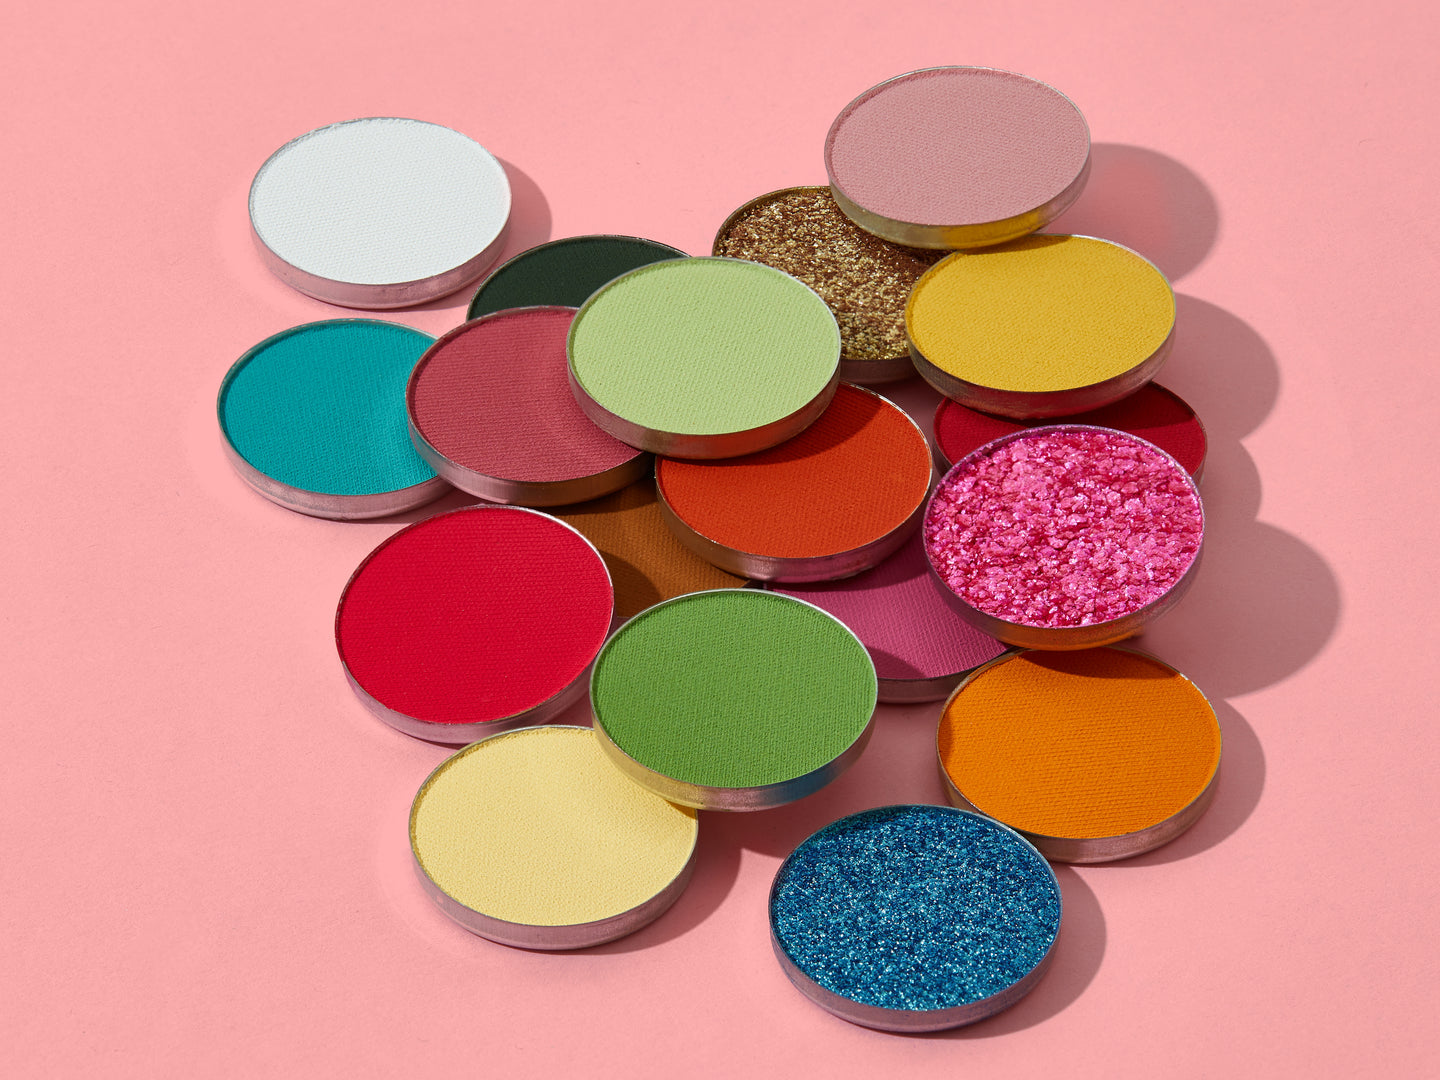 Eyeshadow - A colorful range of pressed single-pan eyeshadow by Coloured Raine Cosmetics